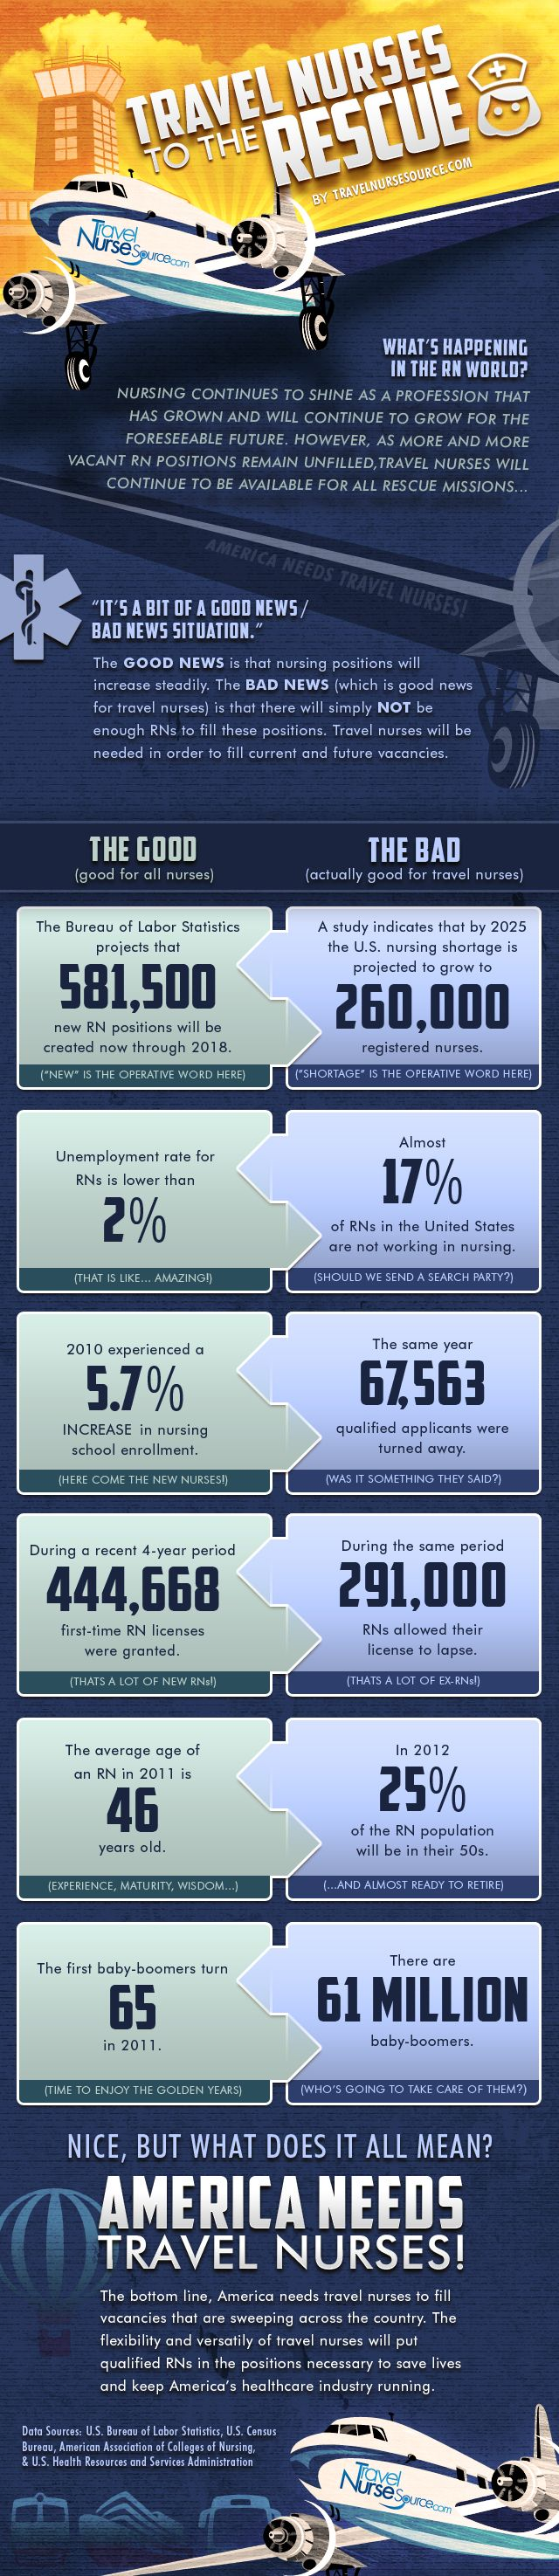 Travel Nursing Jobs Infographic and this is